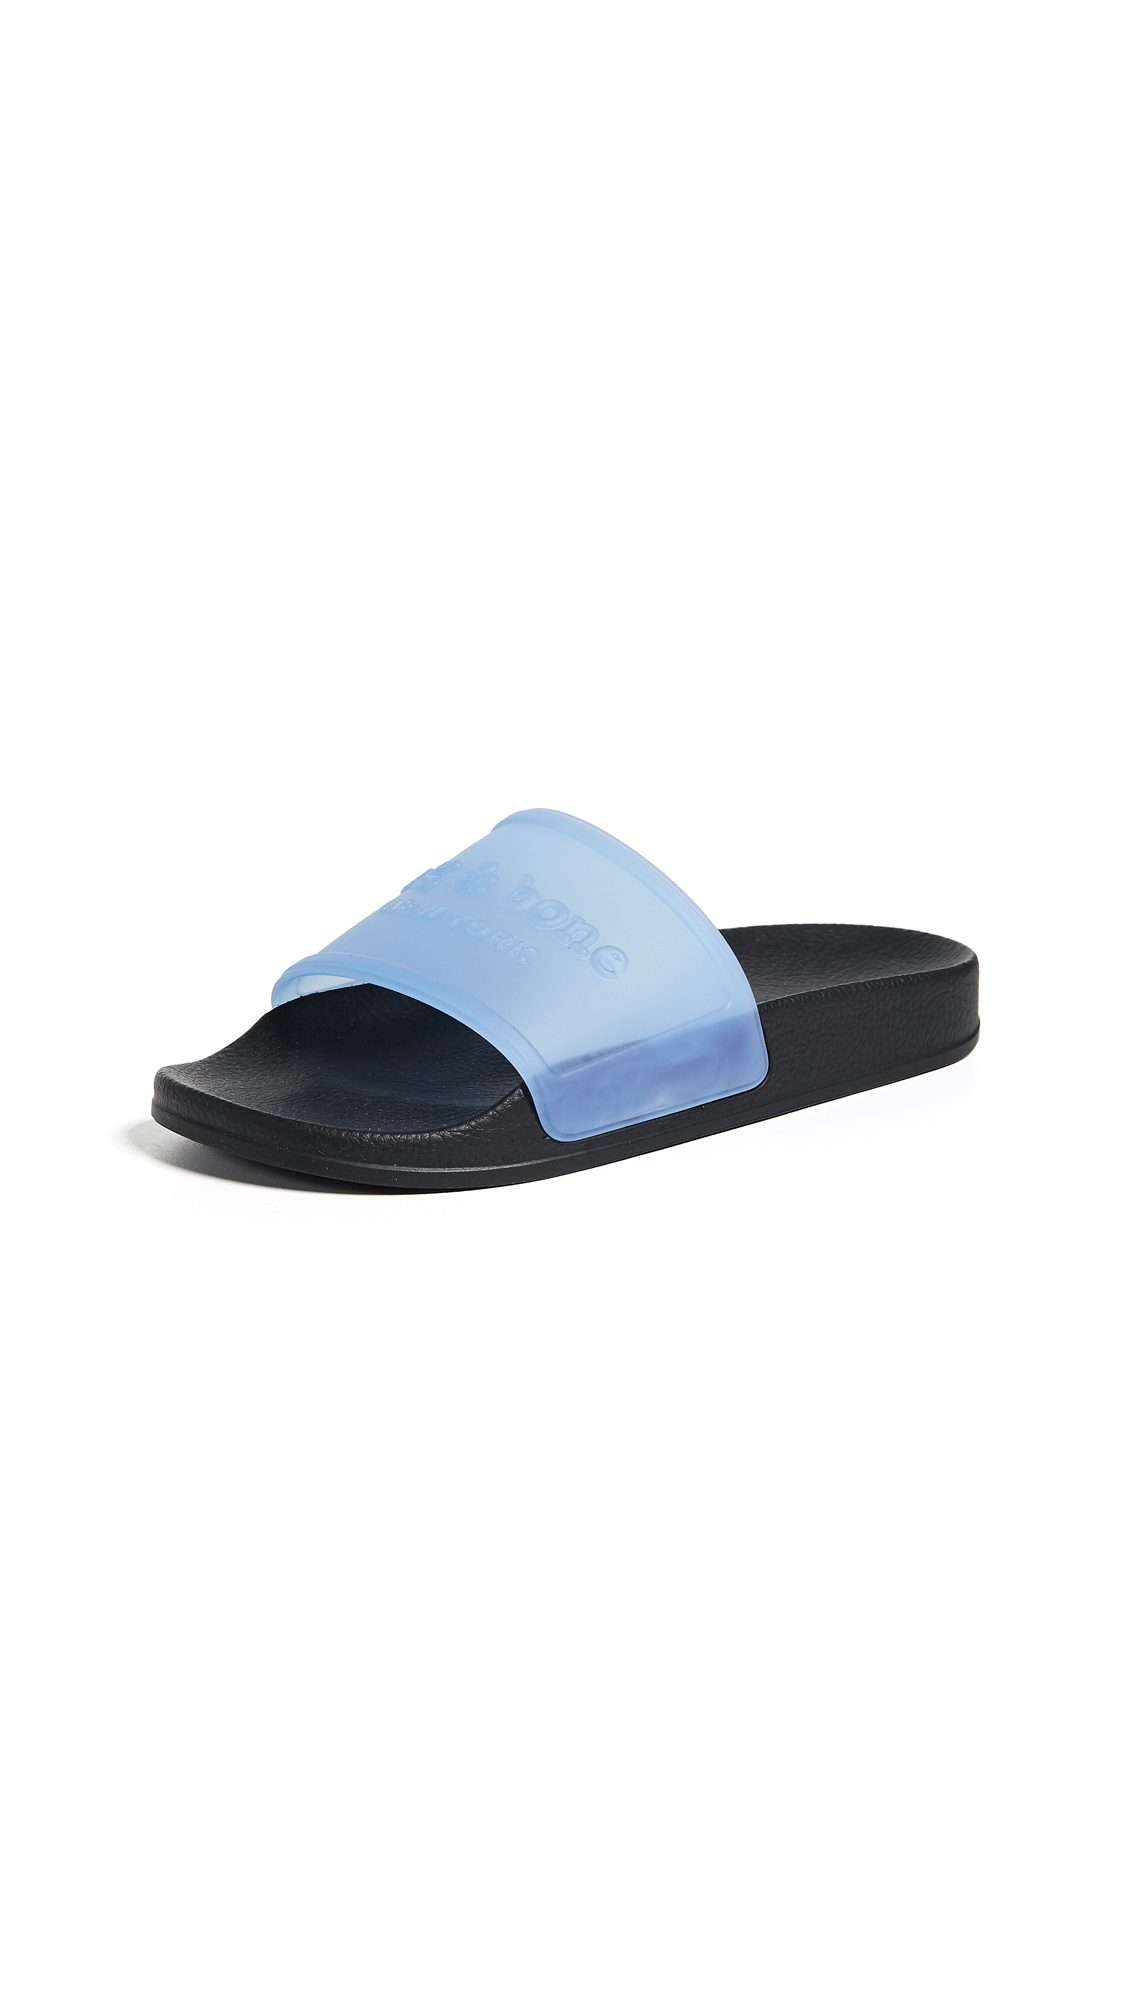 Rag & Bone Rb Pool Slides